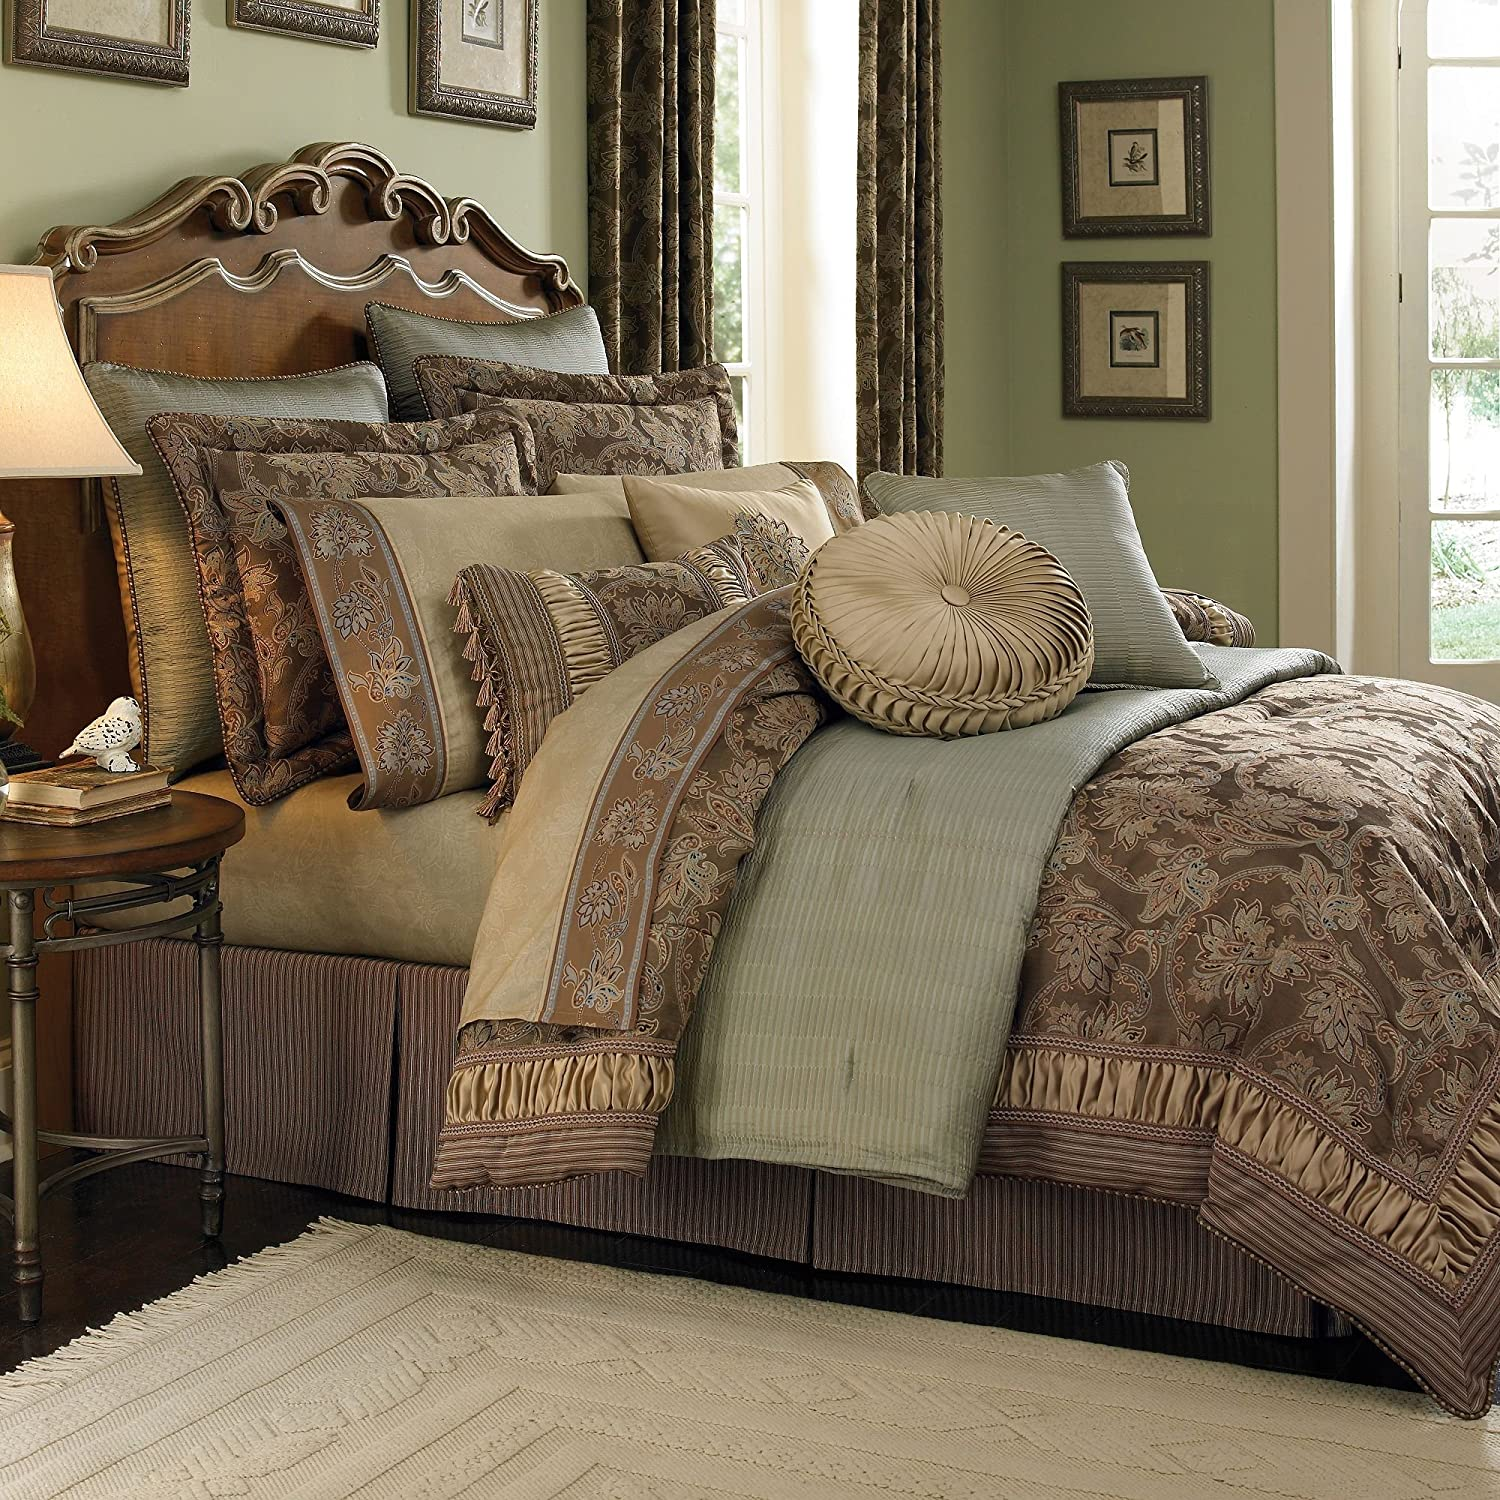 bed comforters queen enchanting comfort western with king amazon rustic within awesome down in and amazing comforter bag bedding bedspreads a sets queens